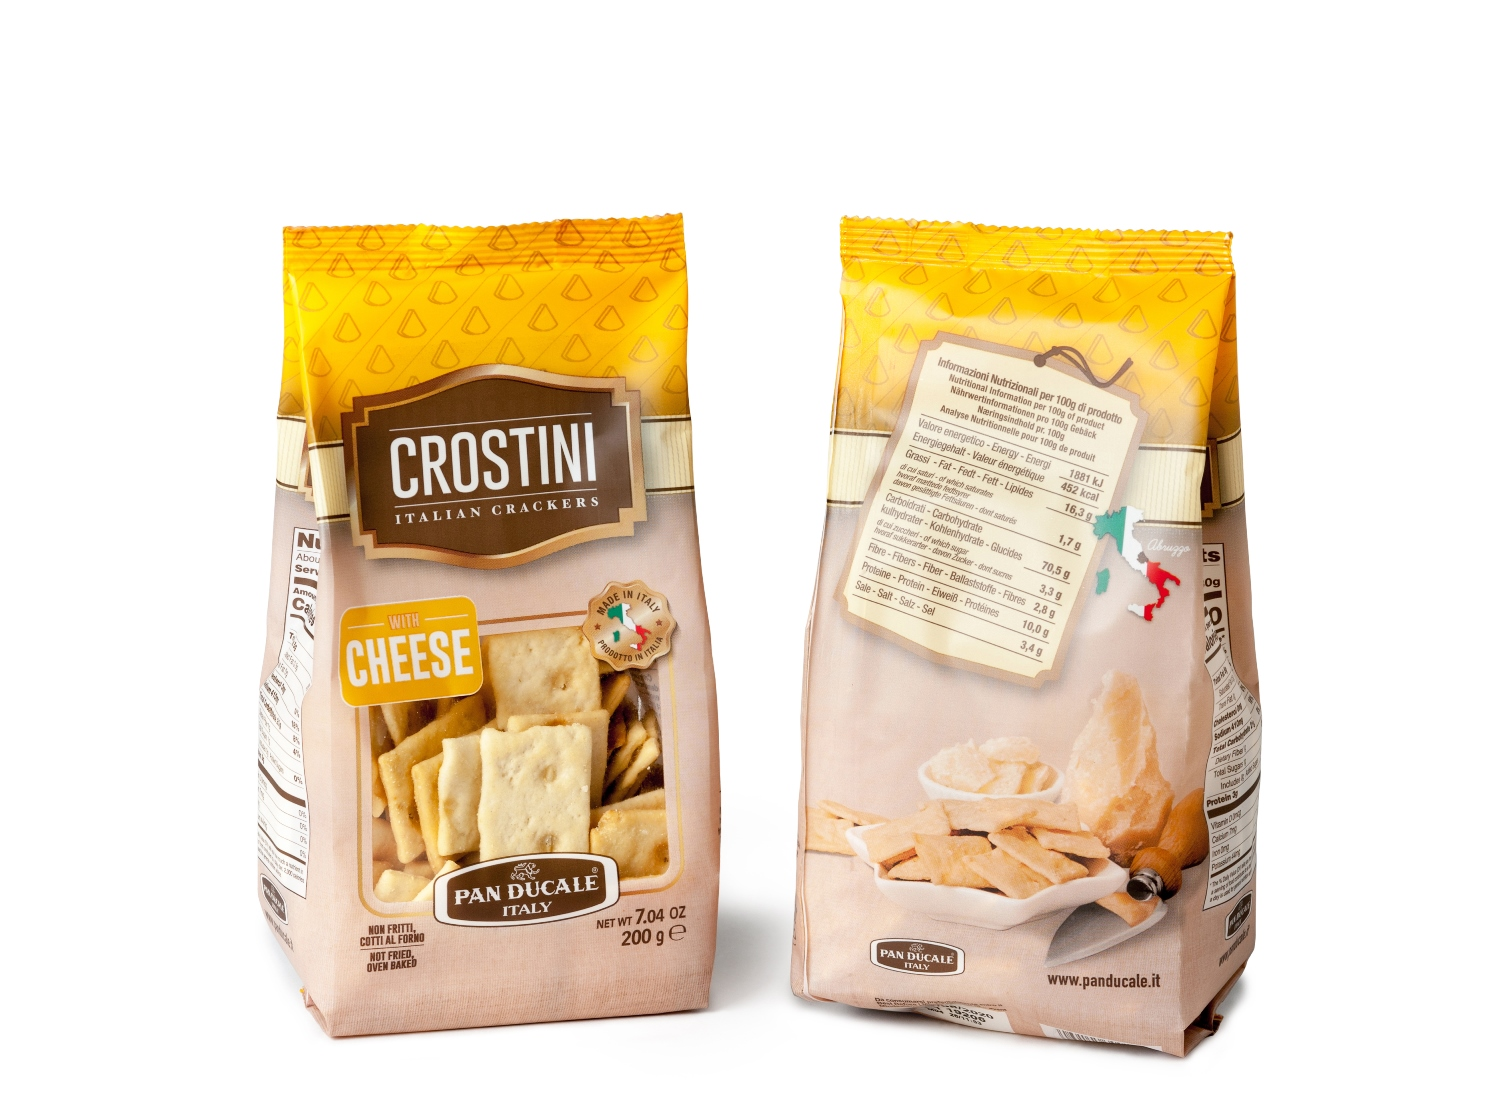 Crostini with CHEESE 200g